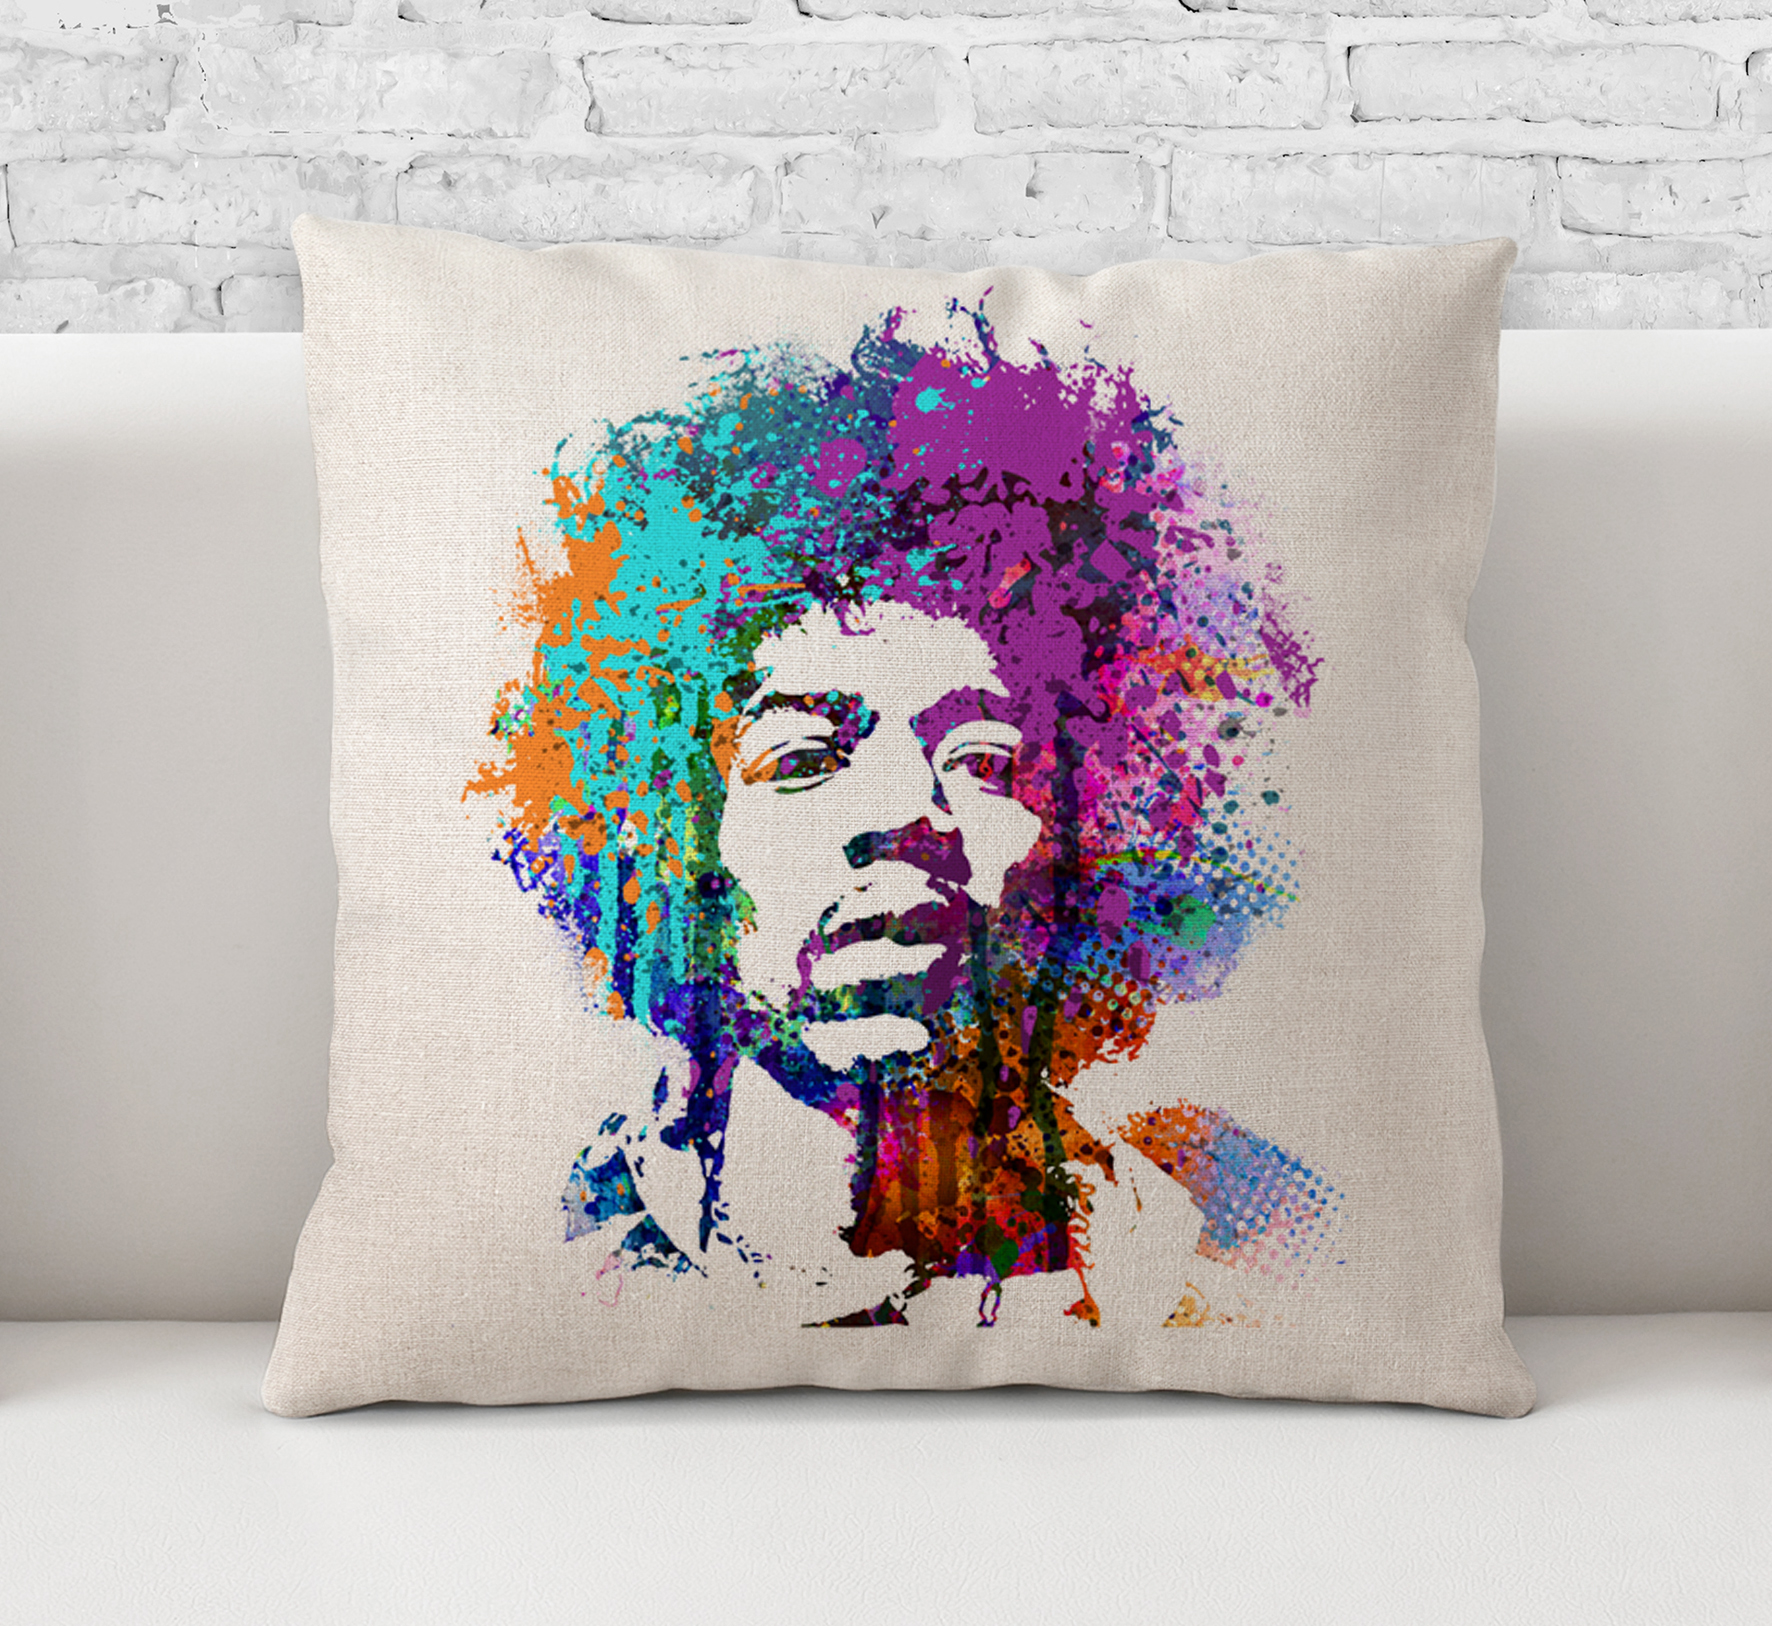 Throw Pillow CaseCushion Cover Jimi HendrixRock And RollRock MusicLegendGuitarist Painting Art 088